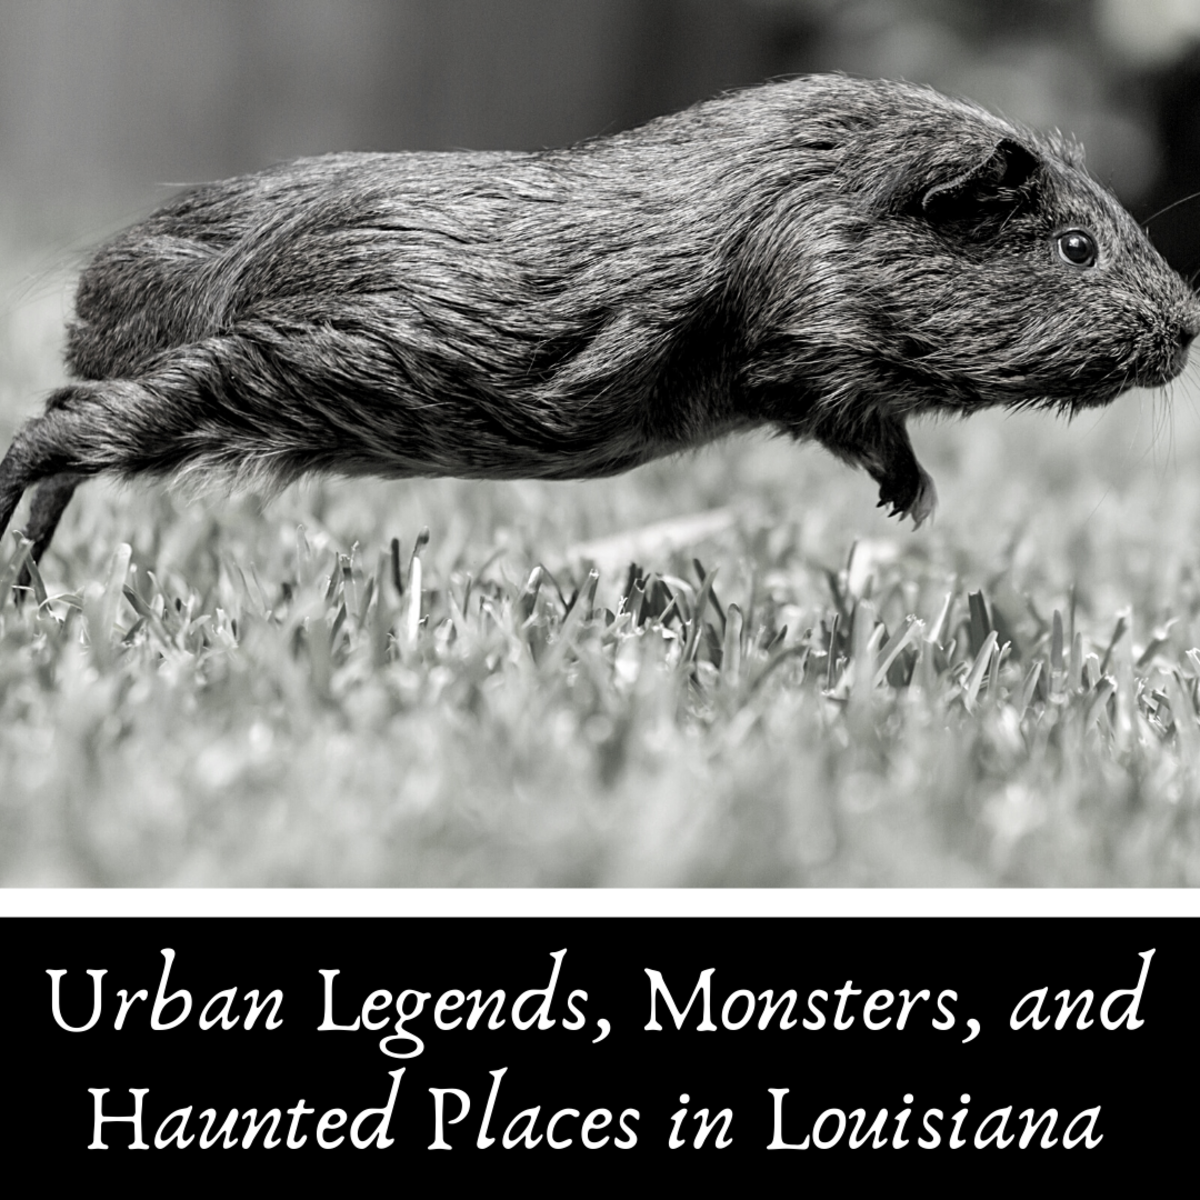 Louisiana Urban Legends, Monsters, and Haunted Places